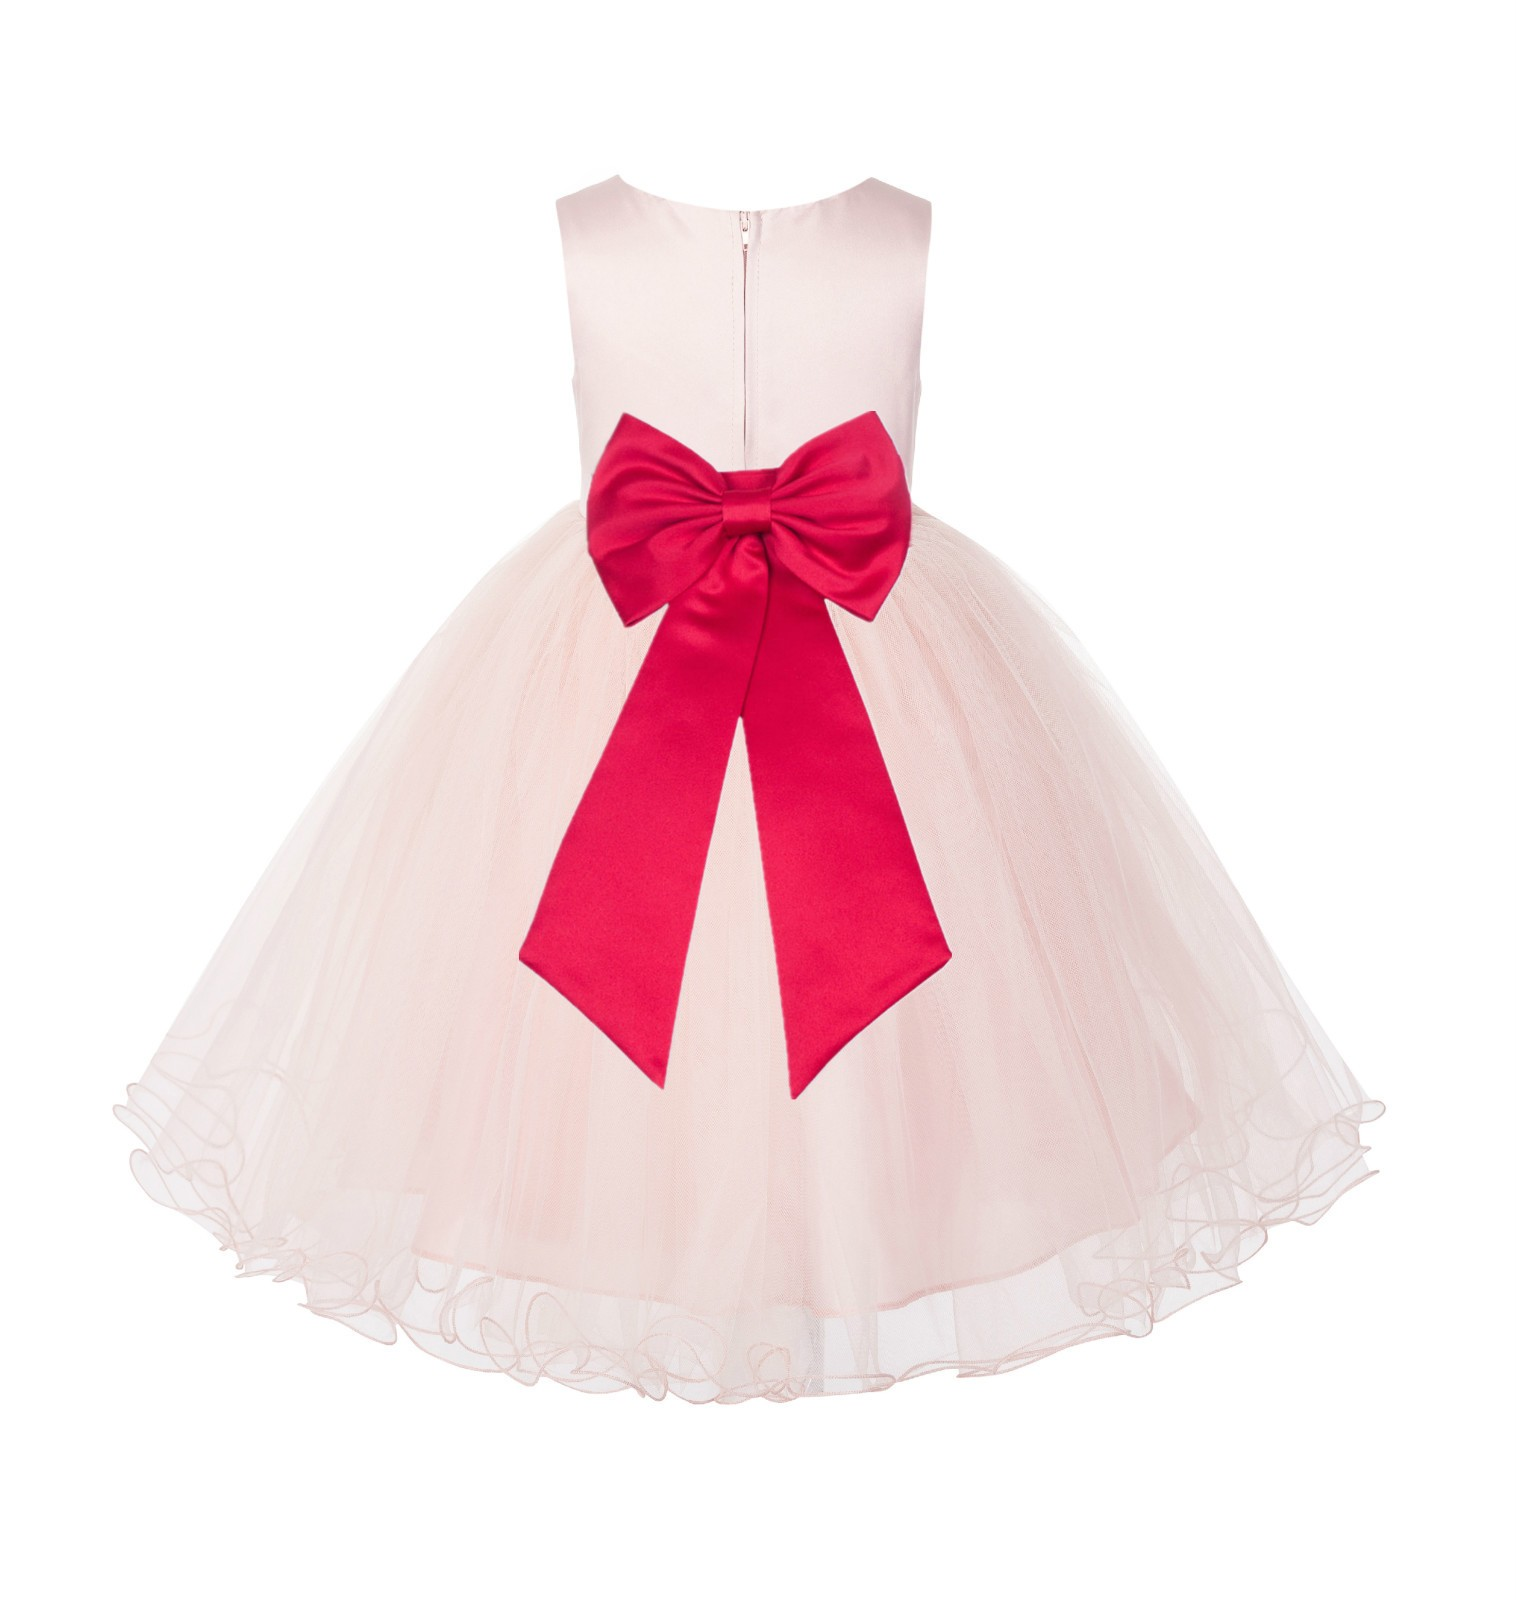 Blush PInk / Cherry Tulle Rattail Edge Flower Girl Dress Wedding Bridesmaid 829T